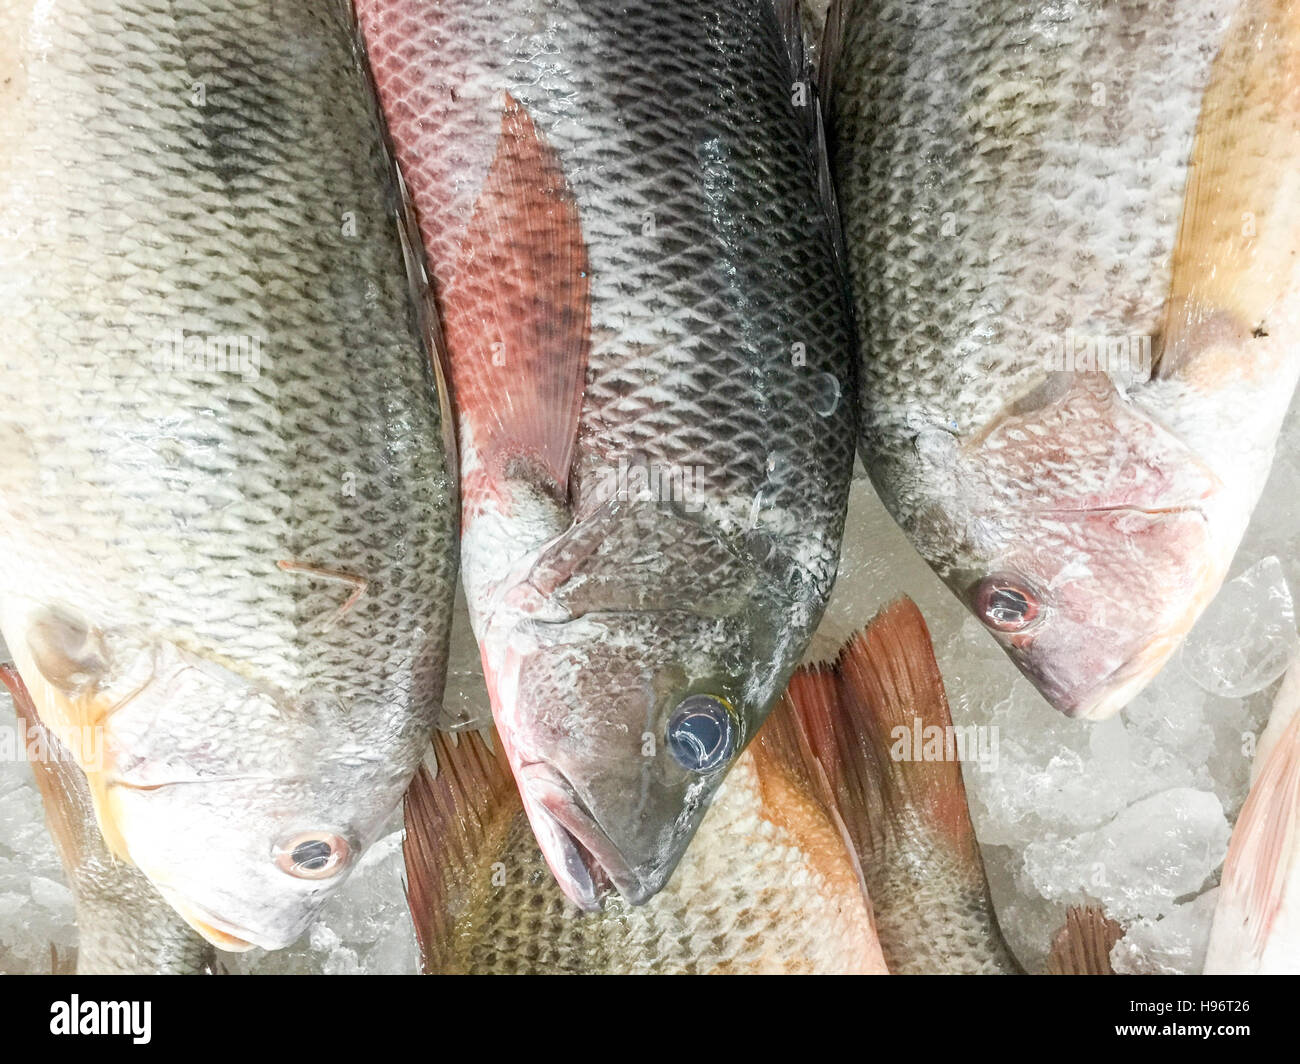 Close up of fresh fish John's Snapper, golden snapper or local called Jenahak on display at fish market. - Stock Image